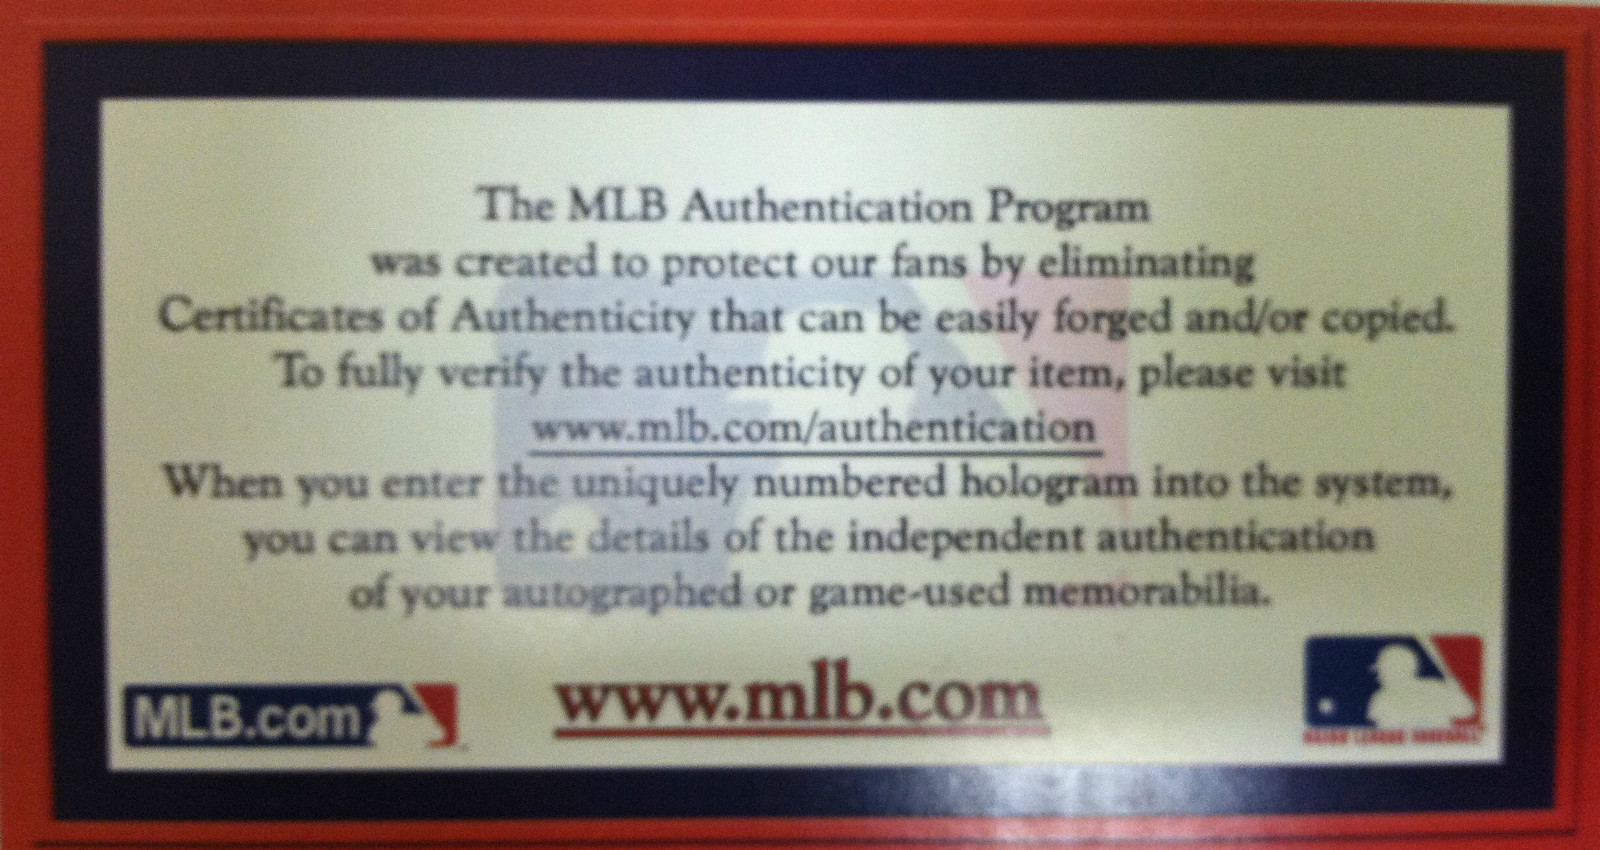 Powers Autographs proudly sells authentic sports autographs from MLB.